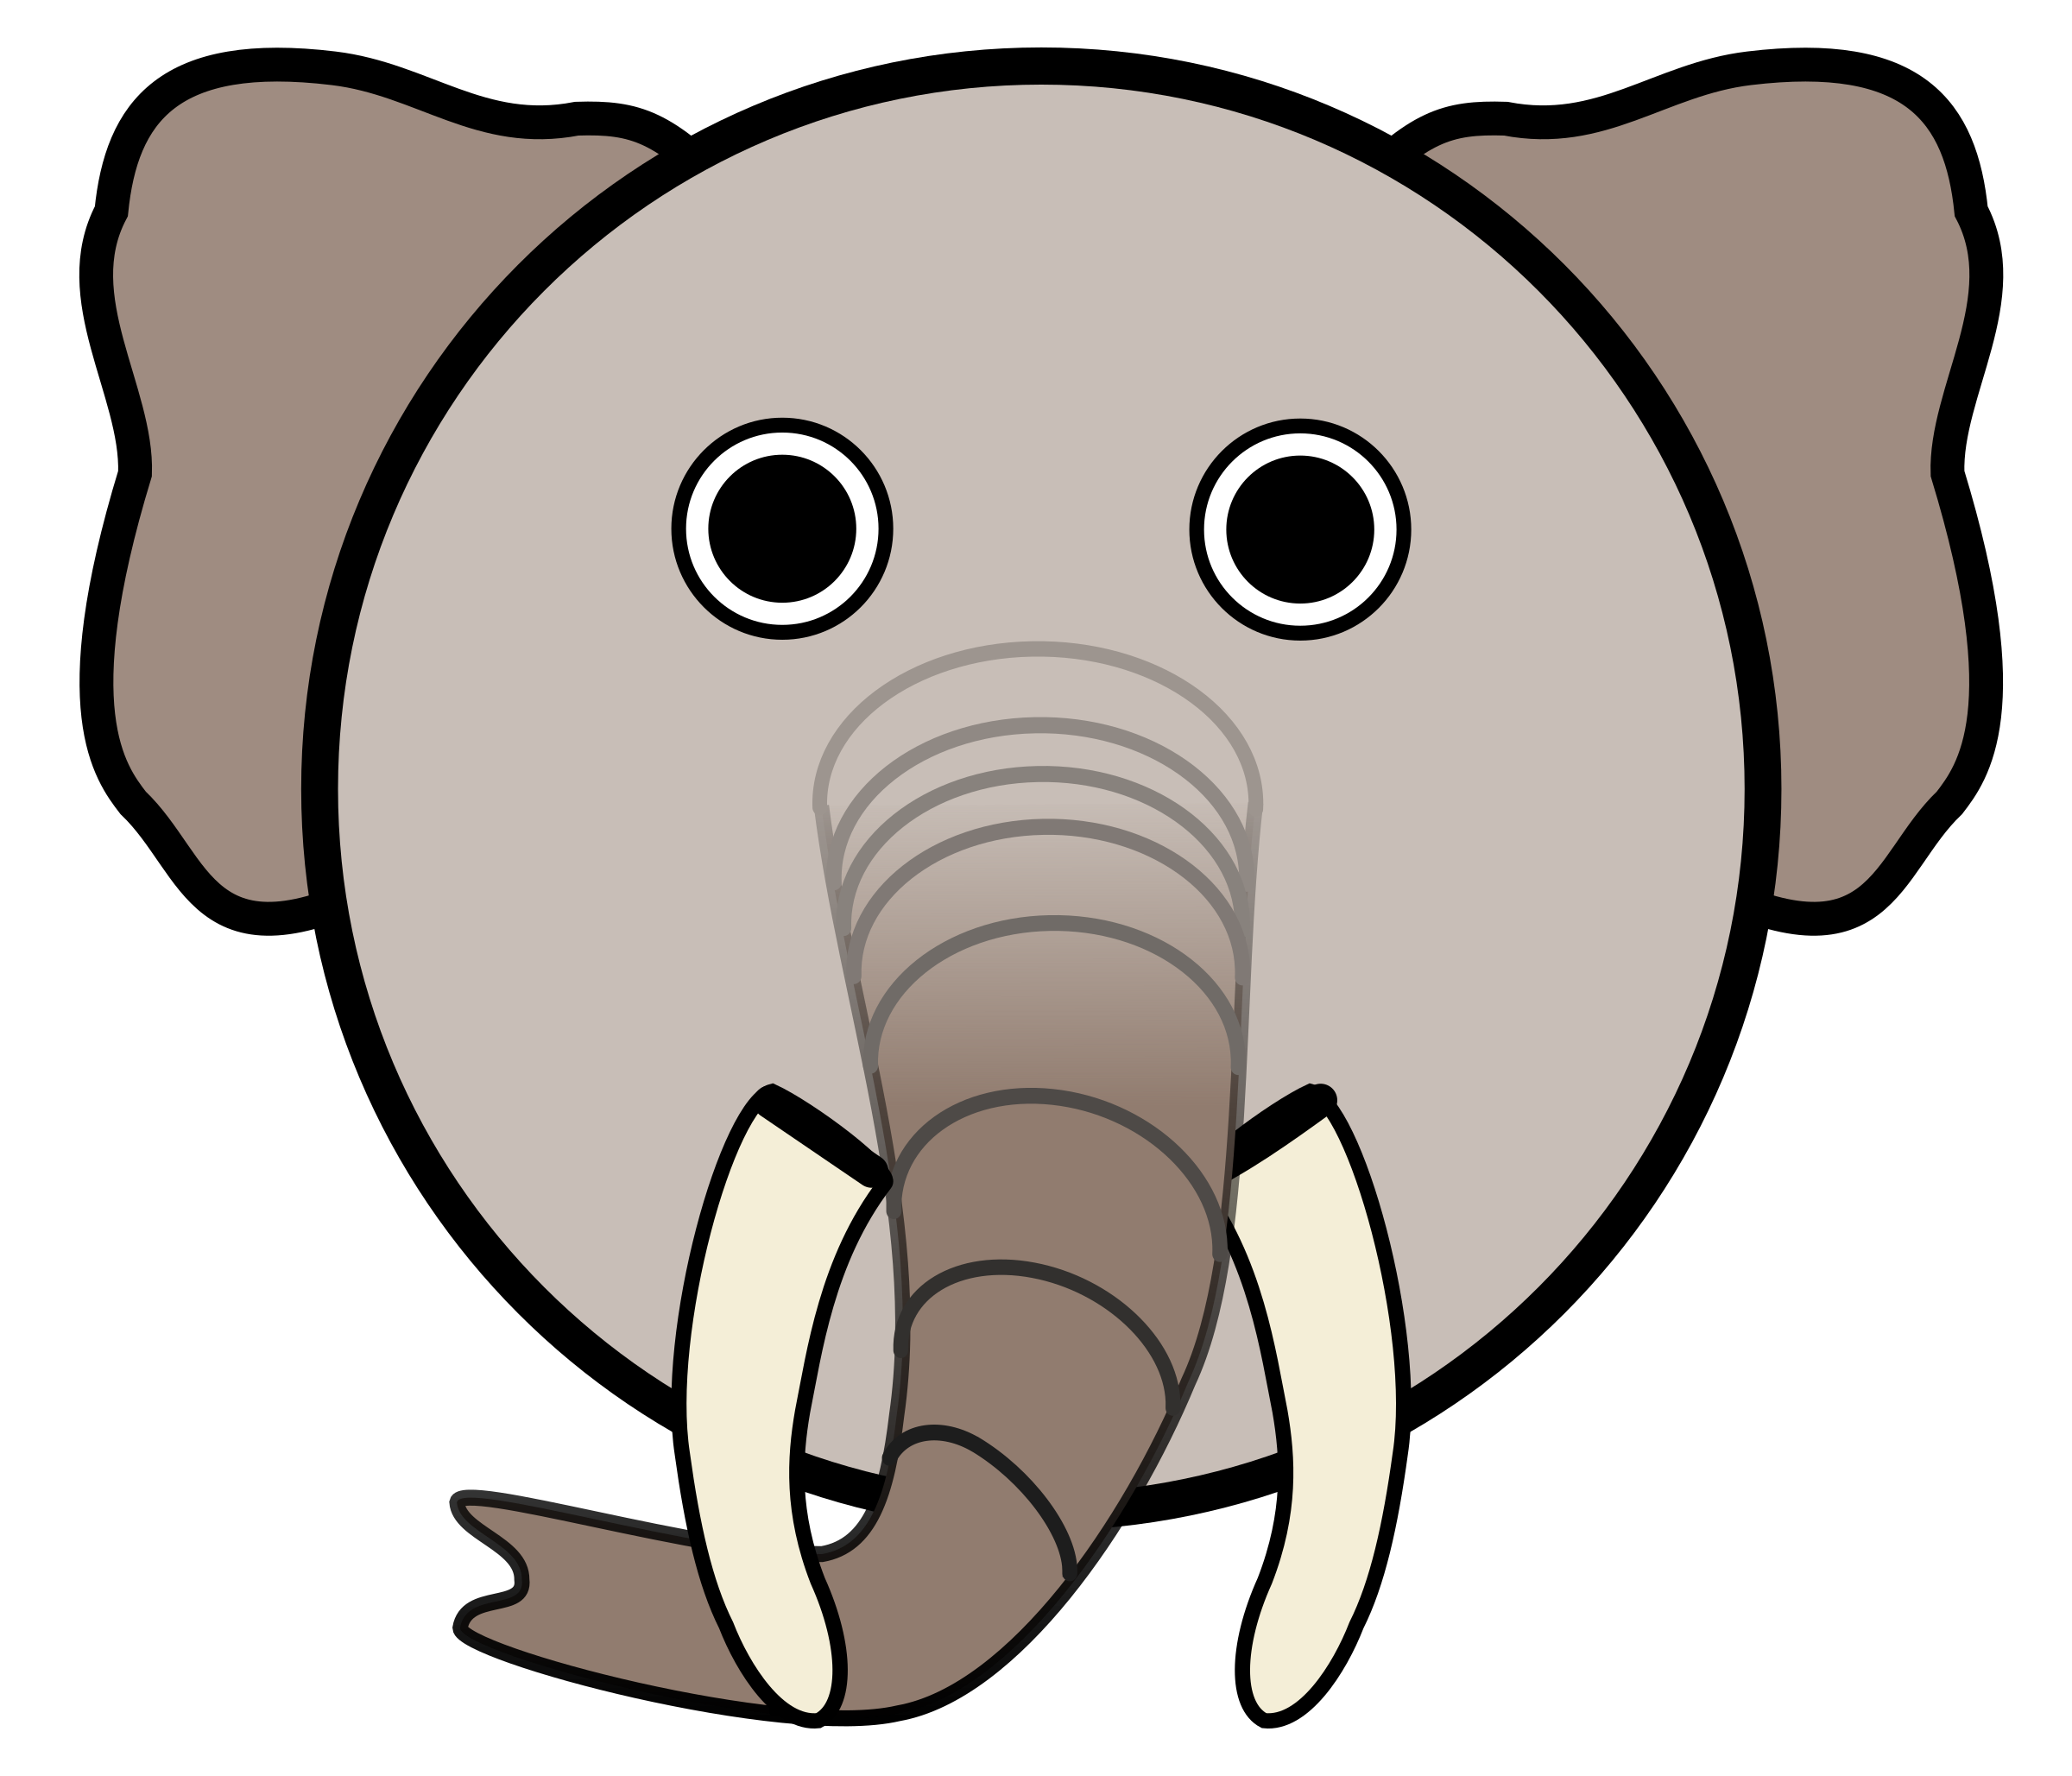 Elephant by Linuxien